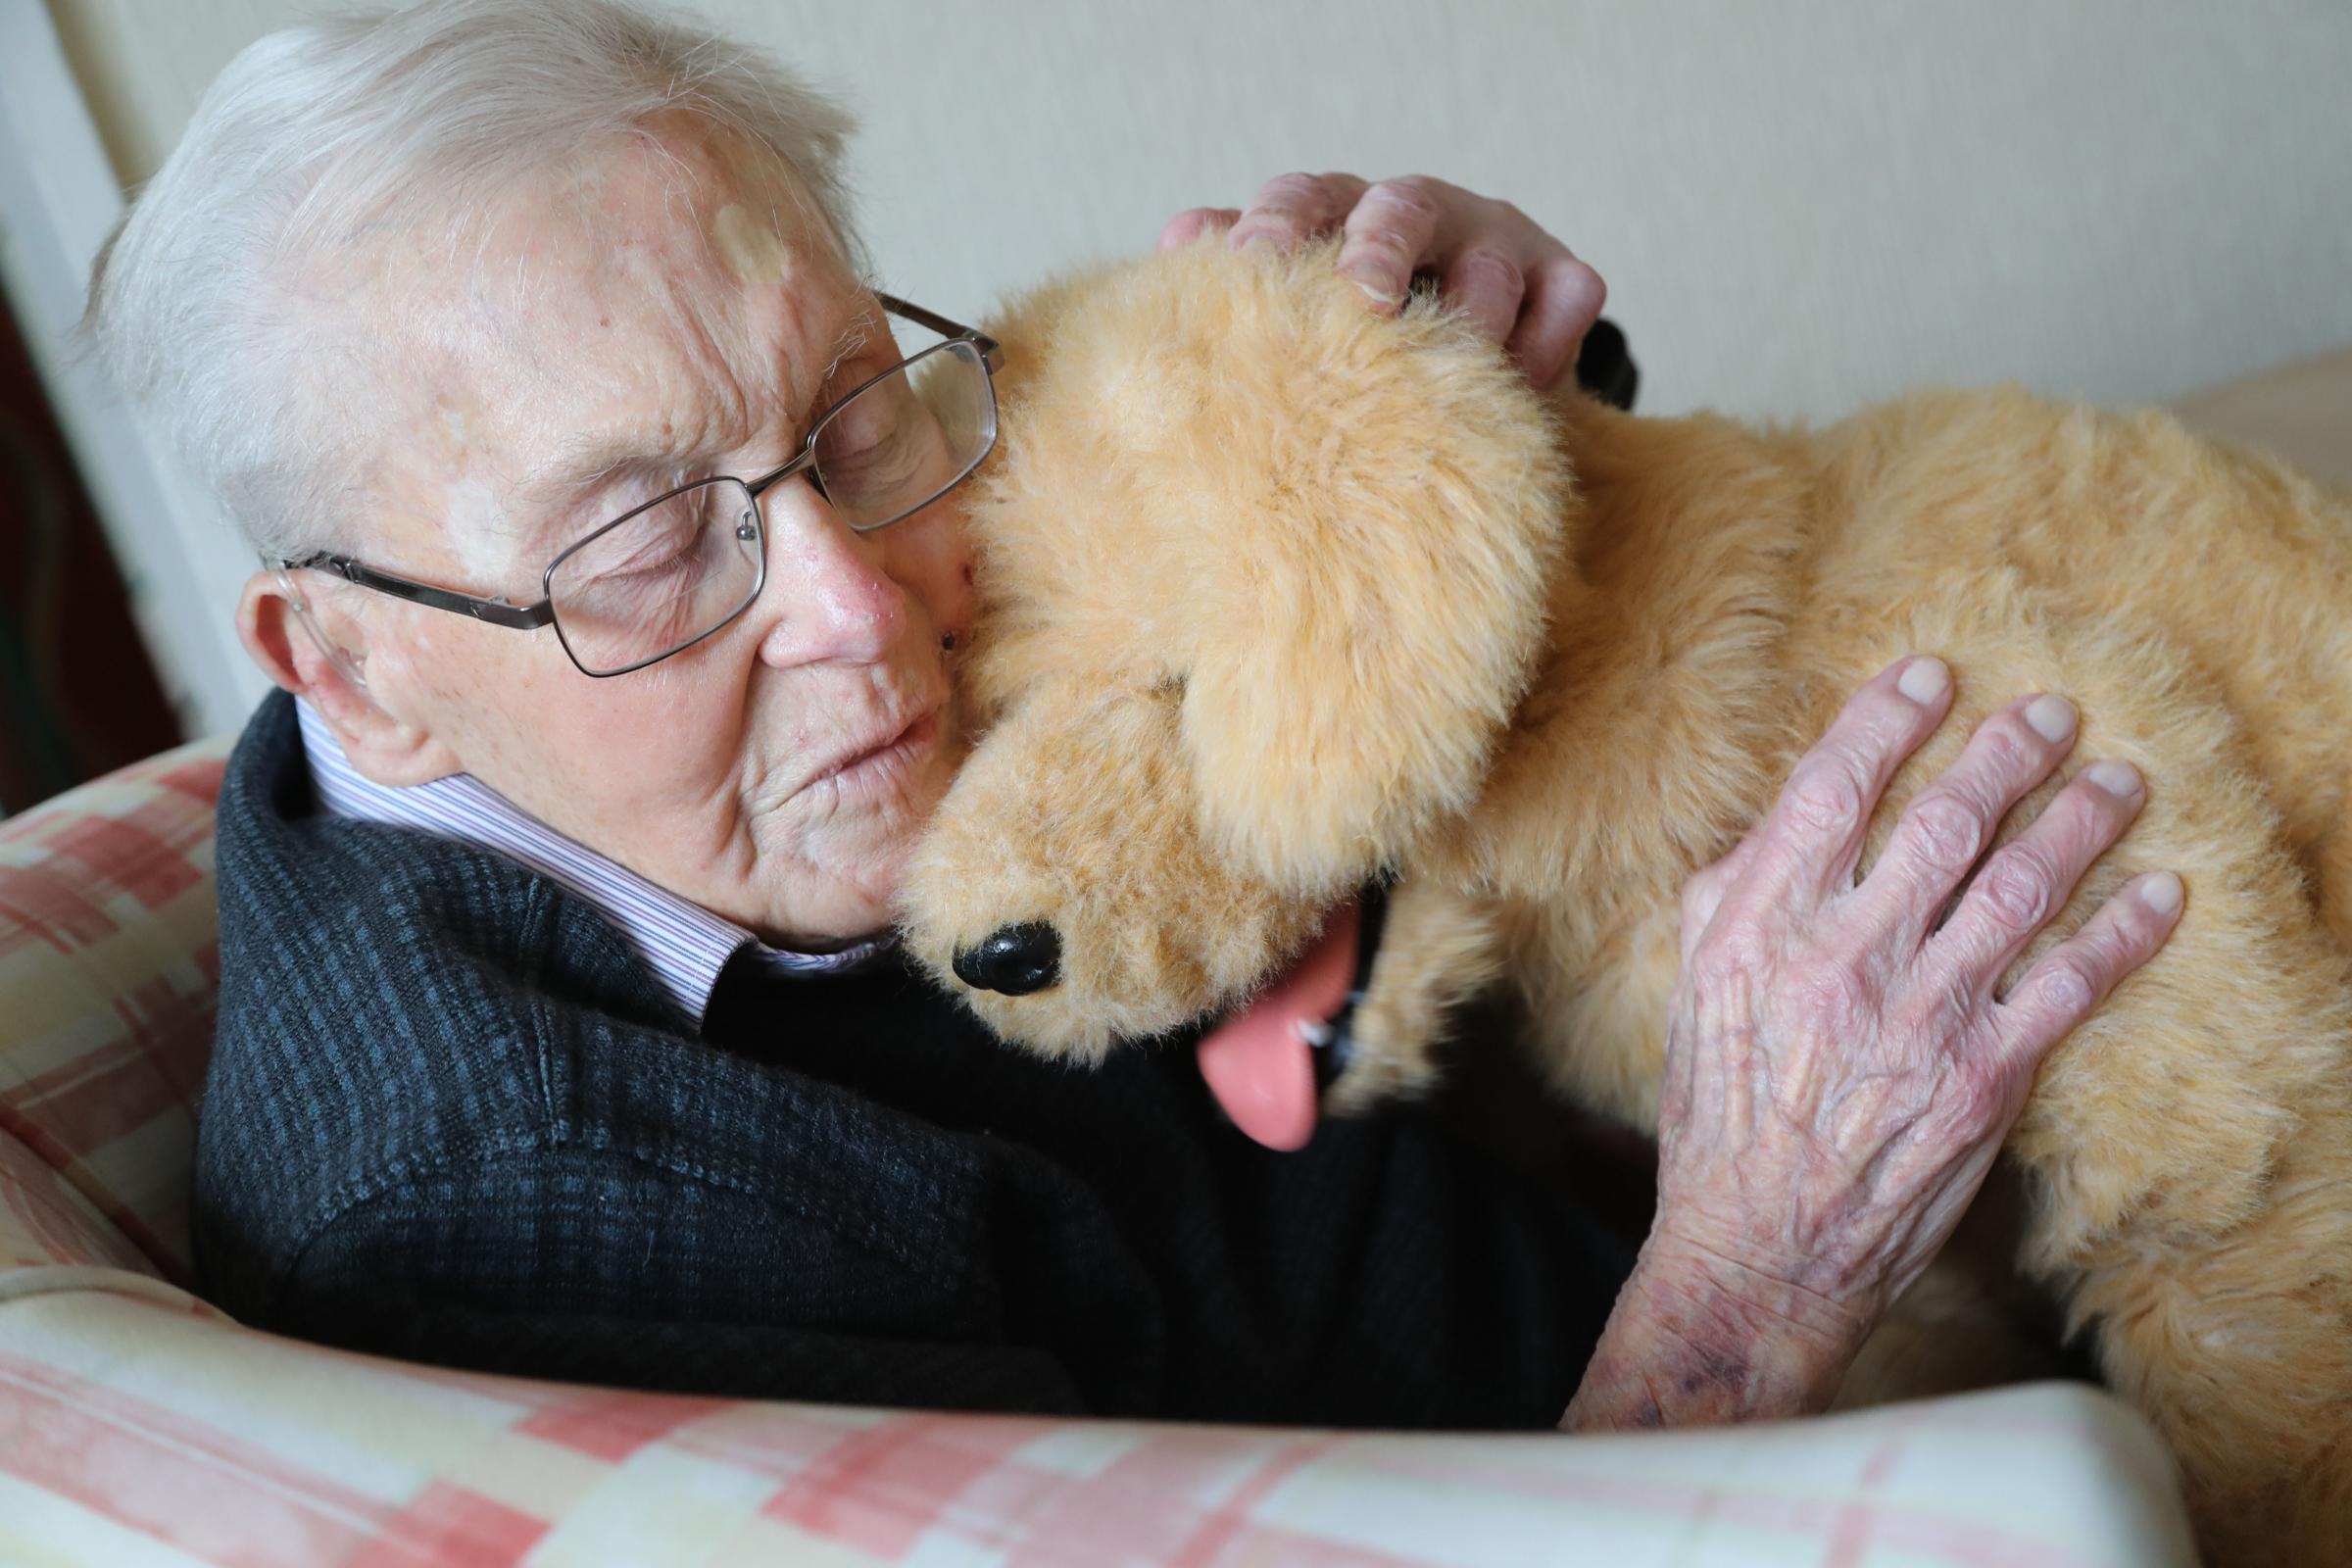 WATCH: Meet Biscuit, the robotic therapy dog at a